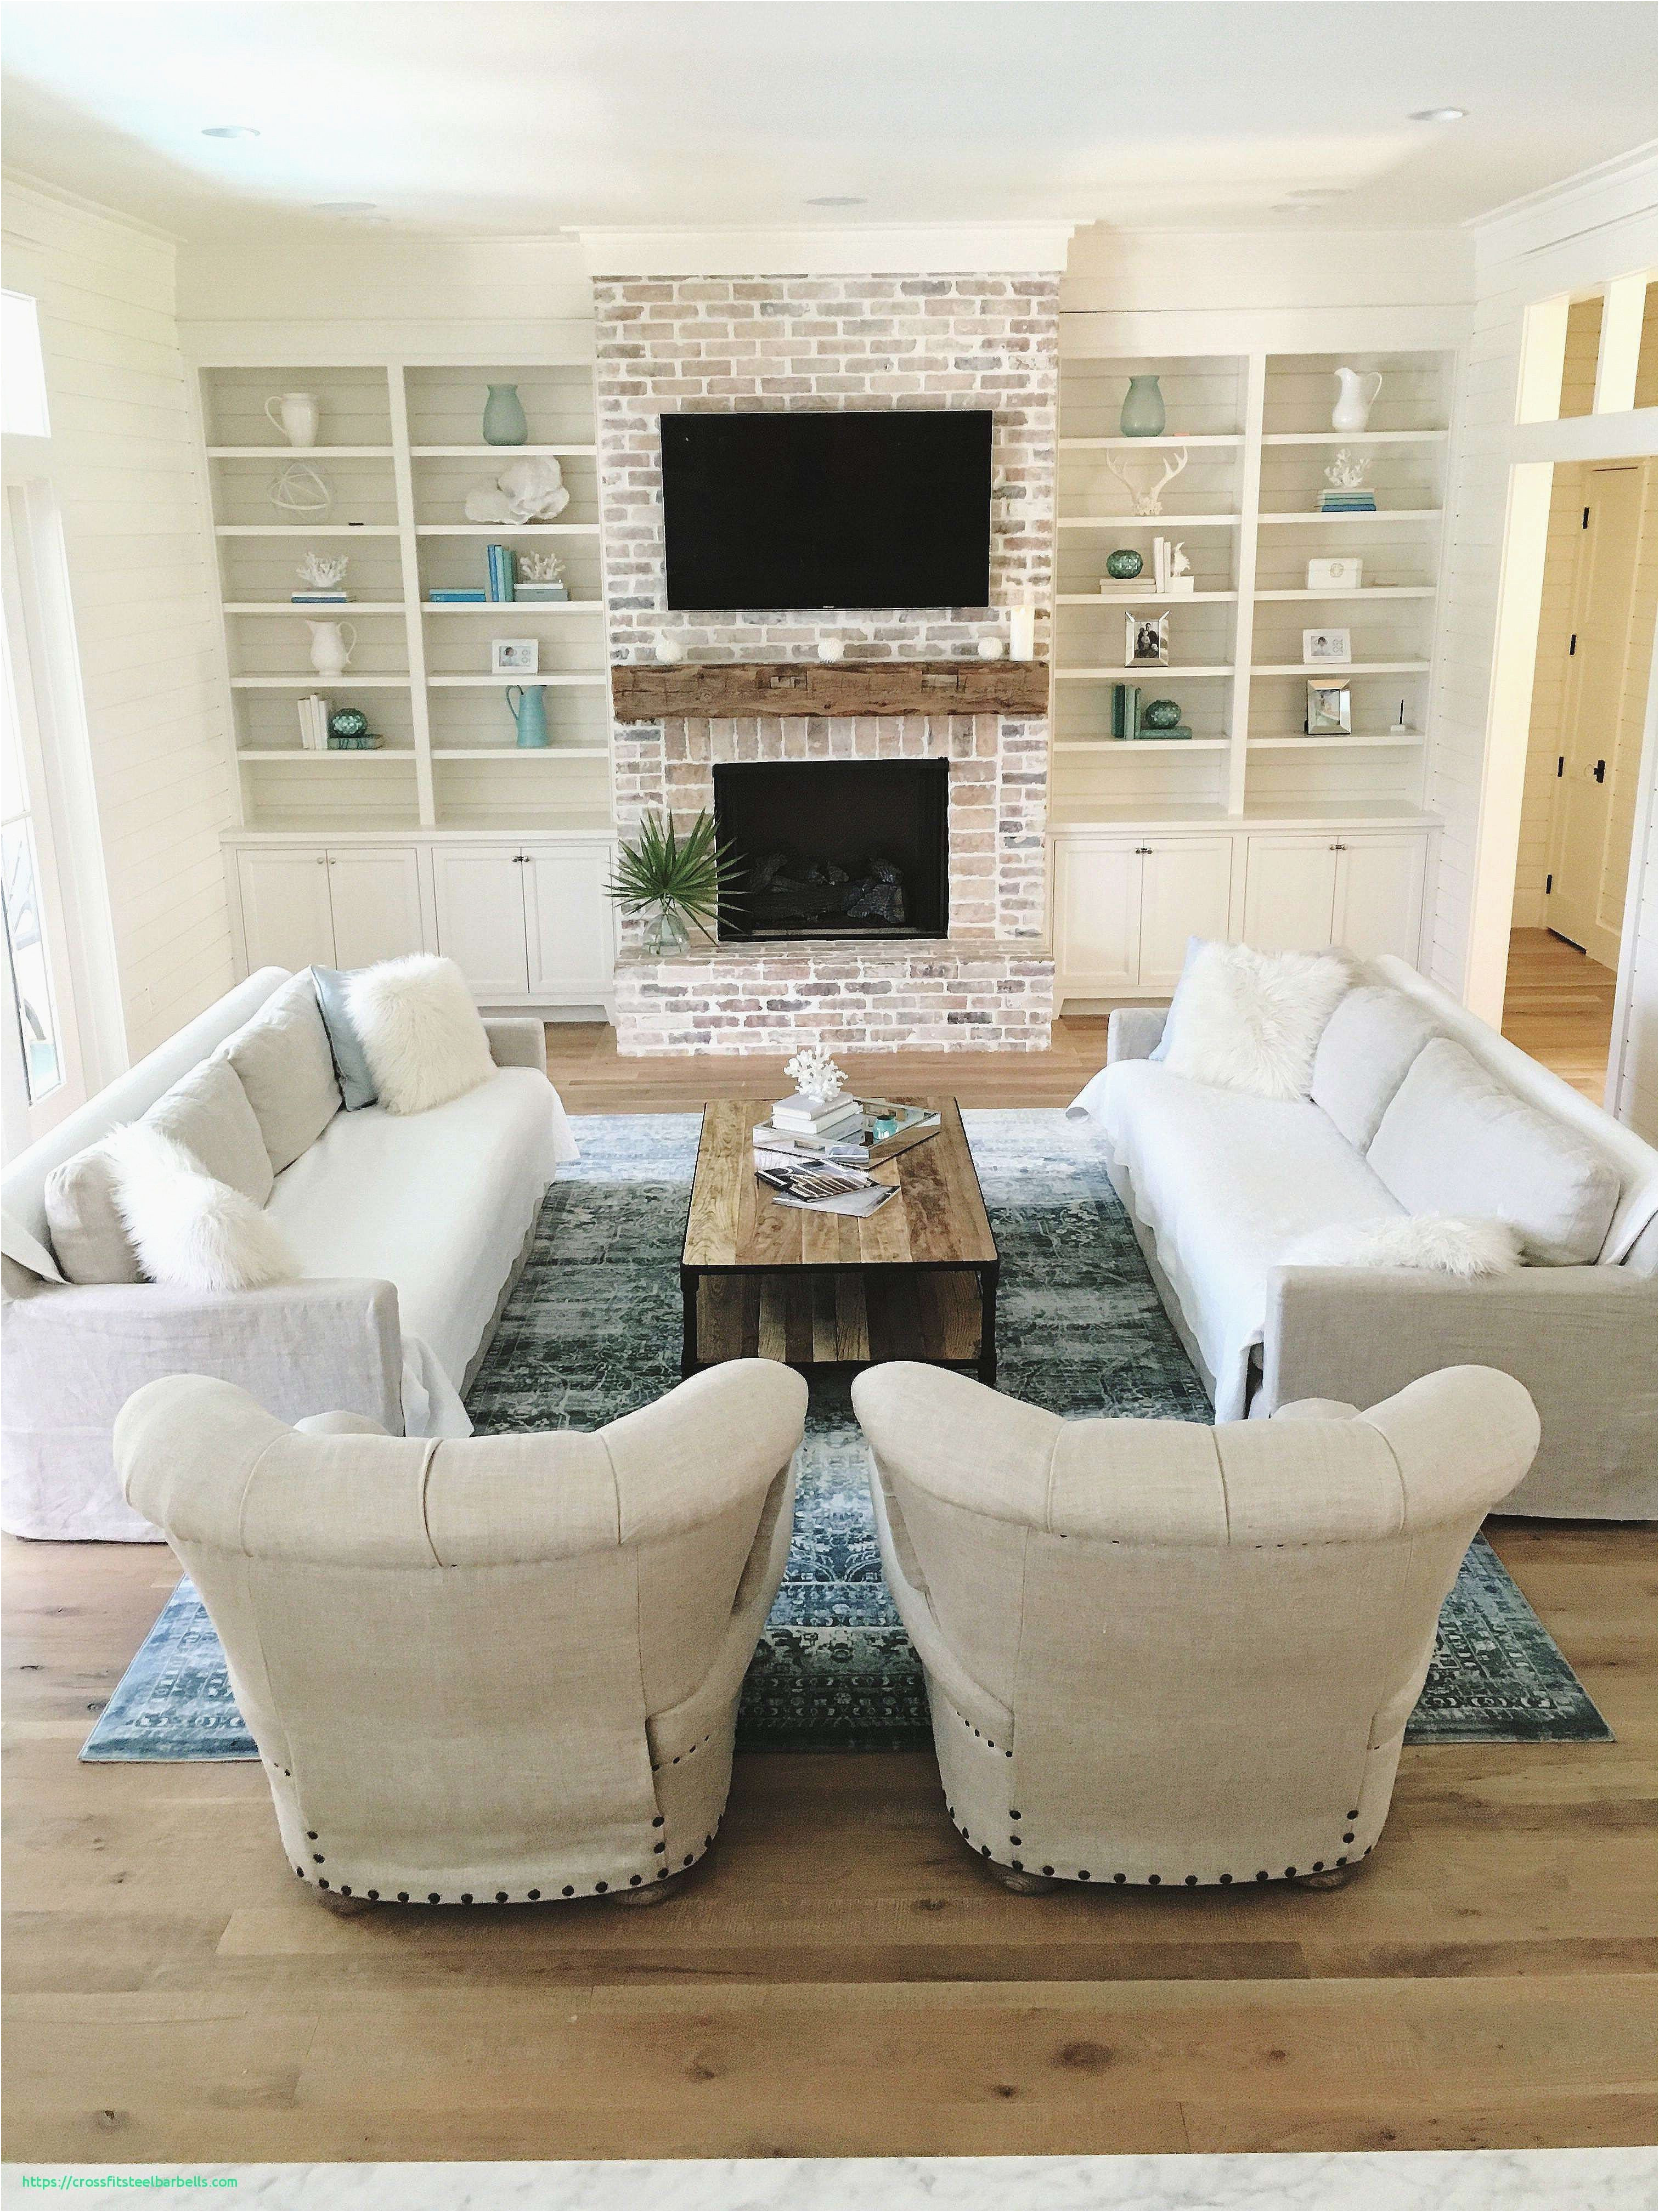 Living Room Design with Fireplace Inspirational Elegant Living Room Ideas 2019